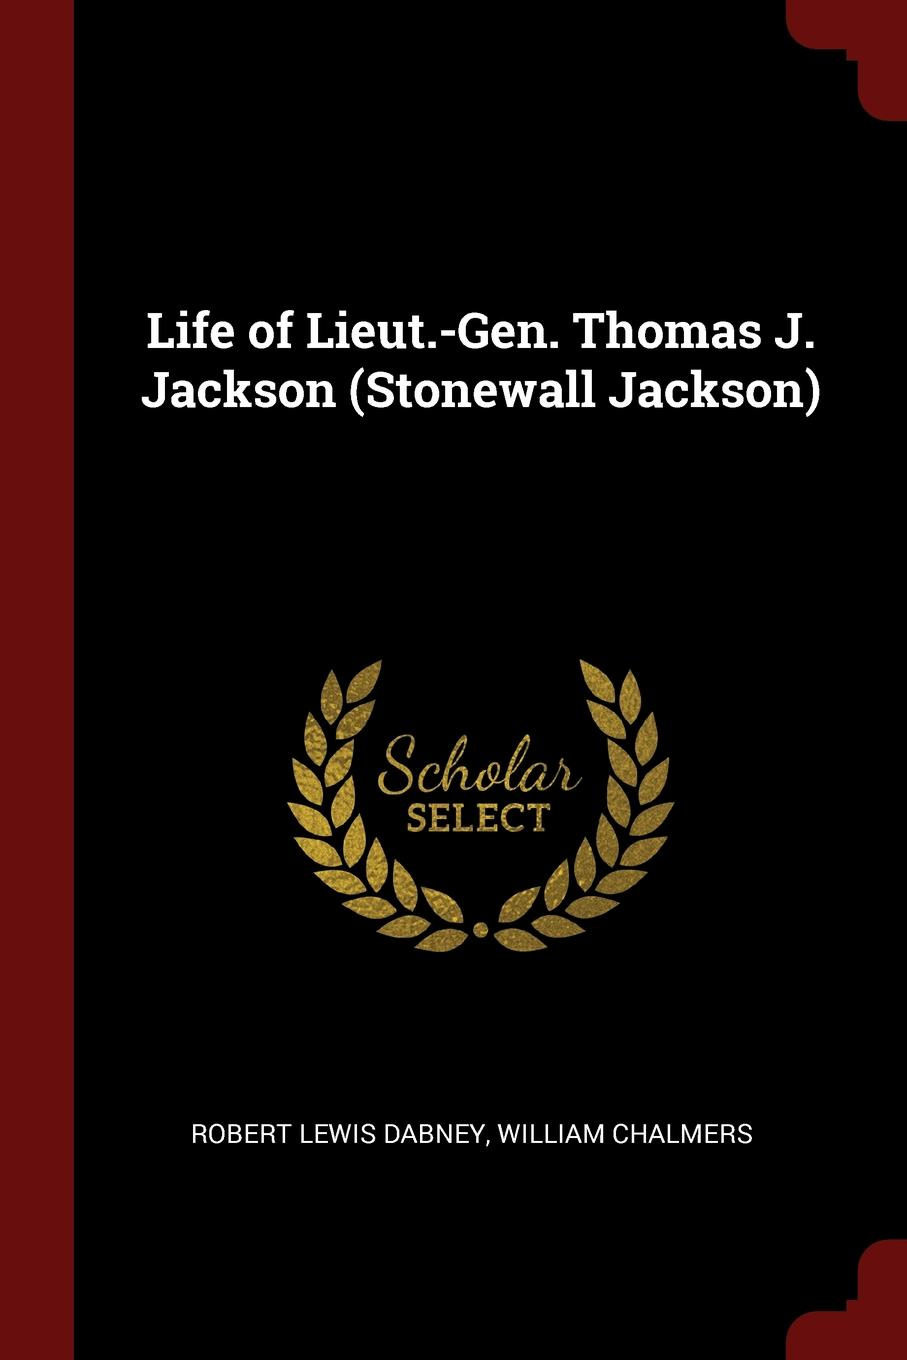 Robert Lewis Dabney, William Chalmers Life of Lieut.-Gen. Thomas J. Jackson (Stonewall Jackson) robert lewis dabney life and campaigns of lieut gen thomas j jackson stonewall jackson